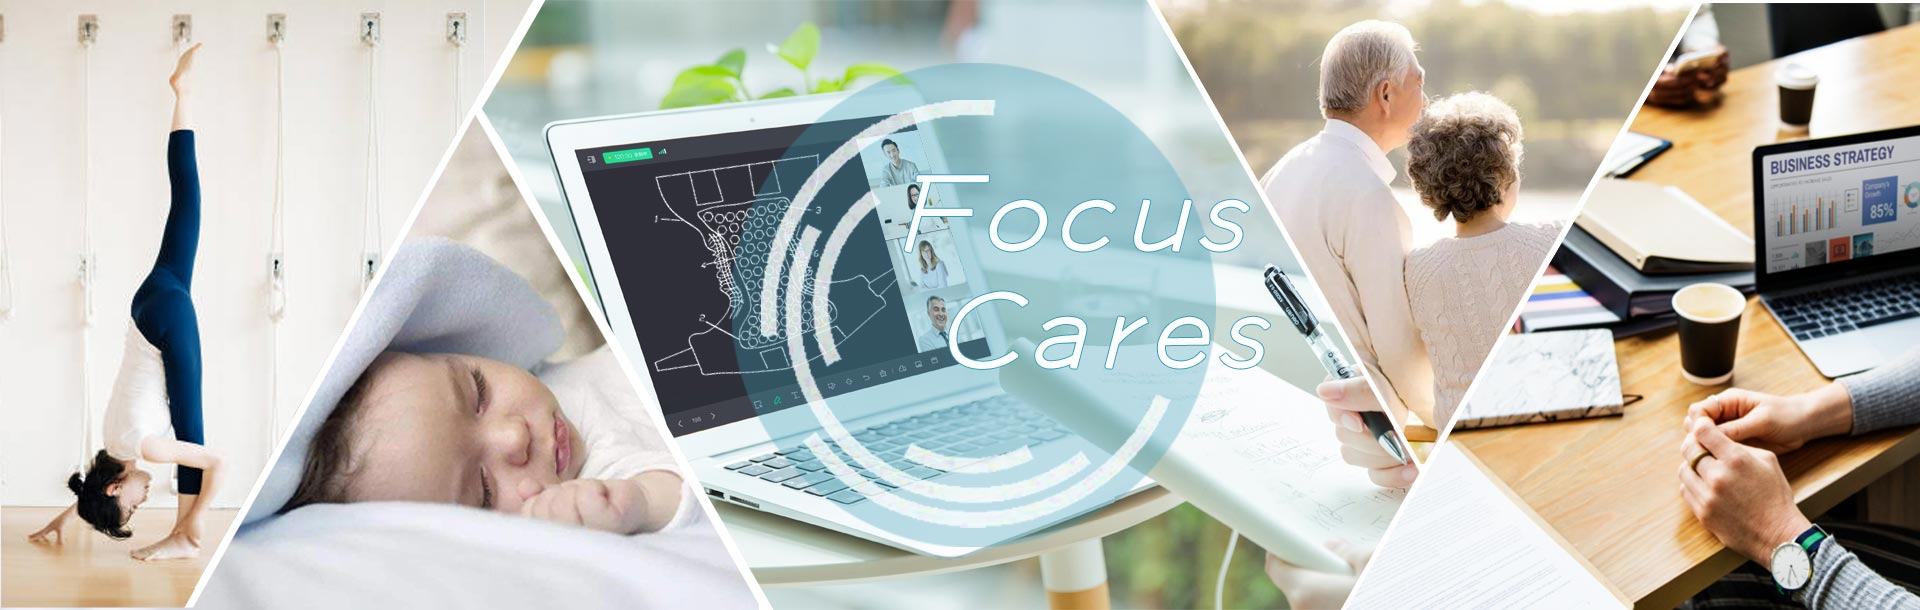 focus on family cares